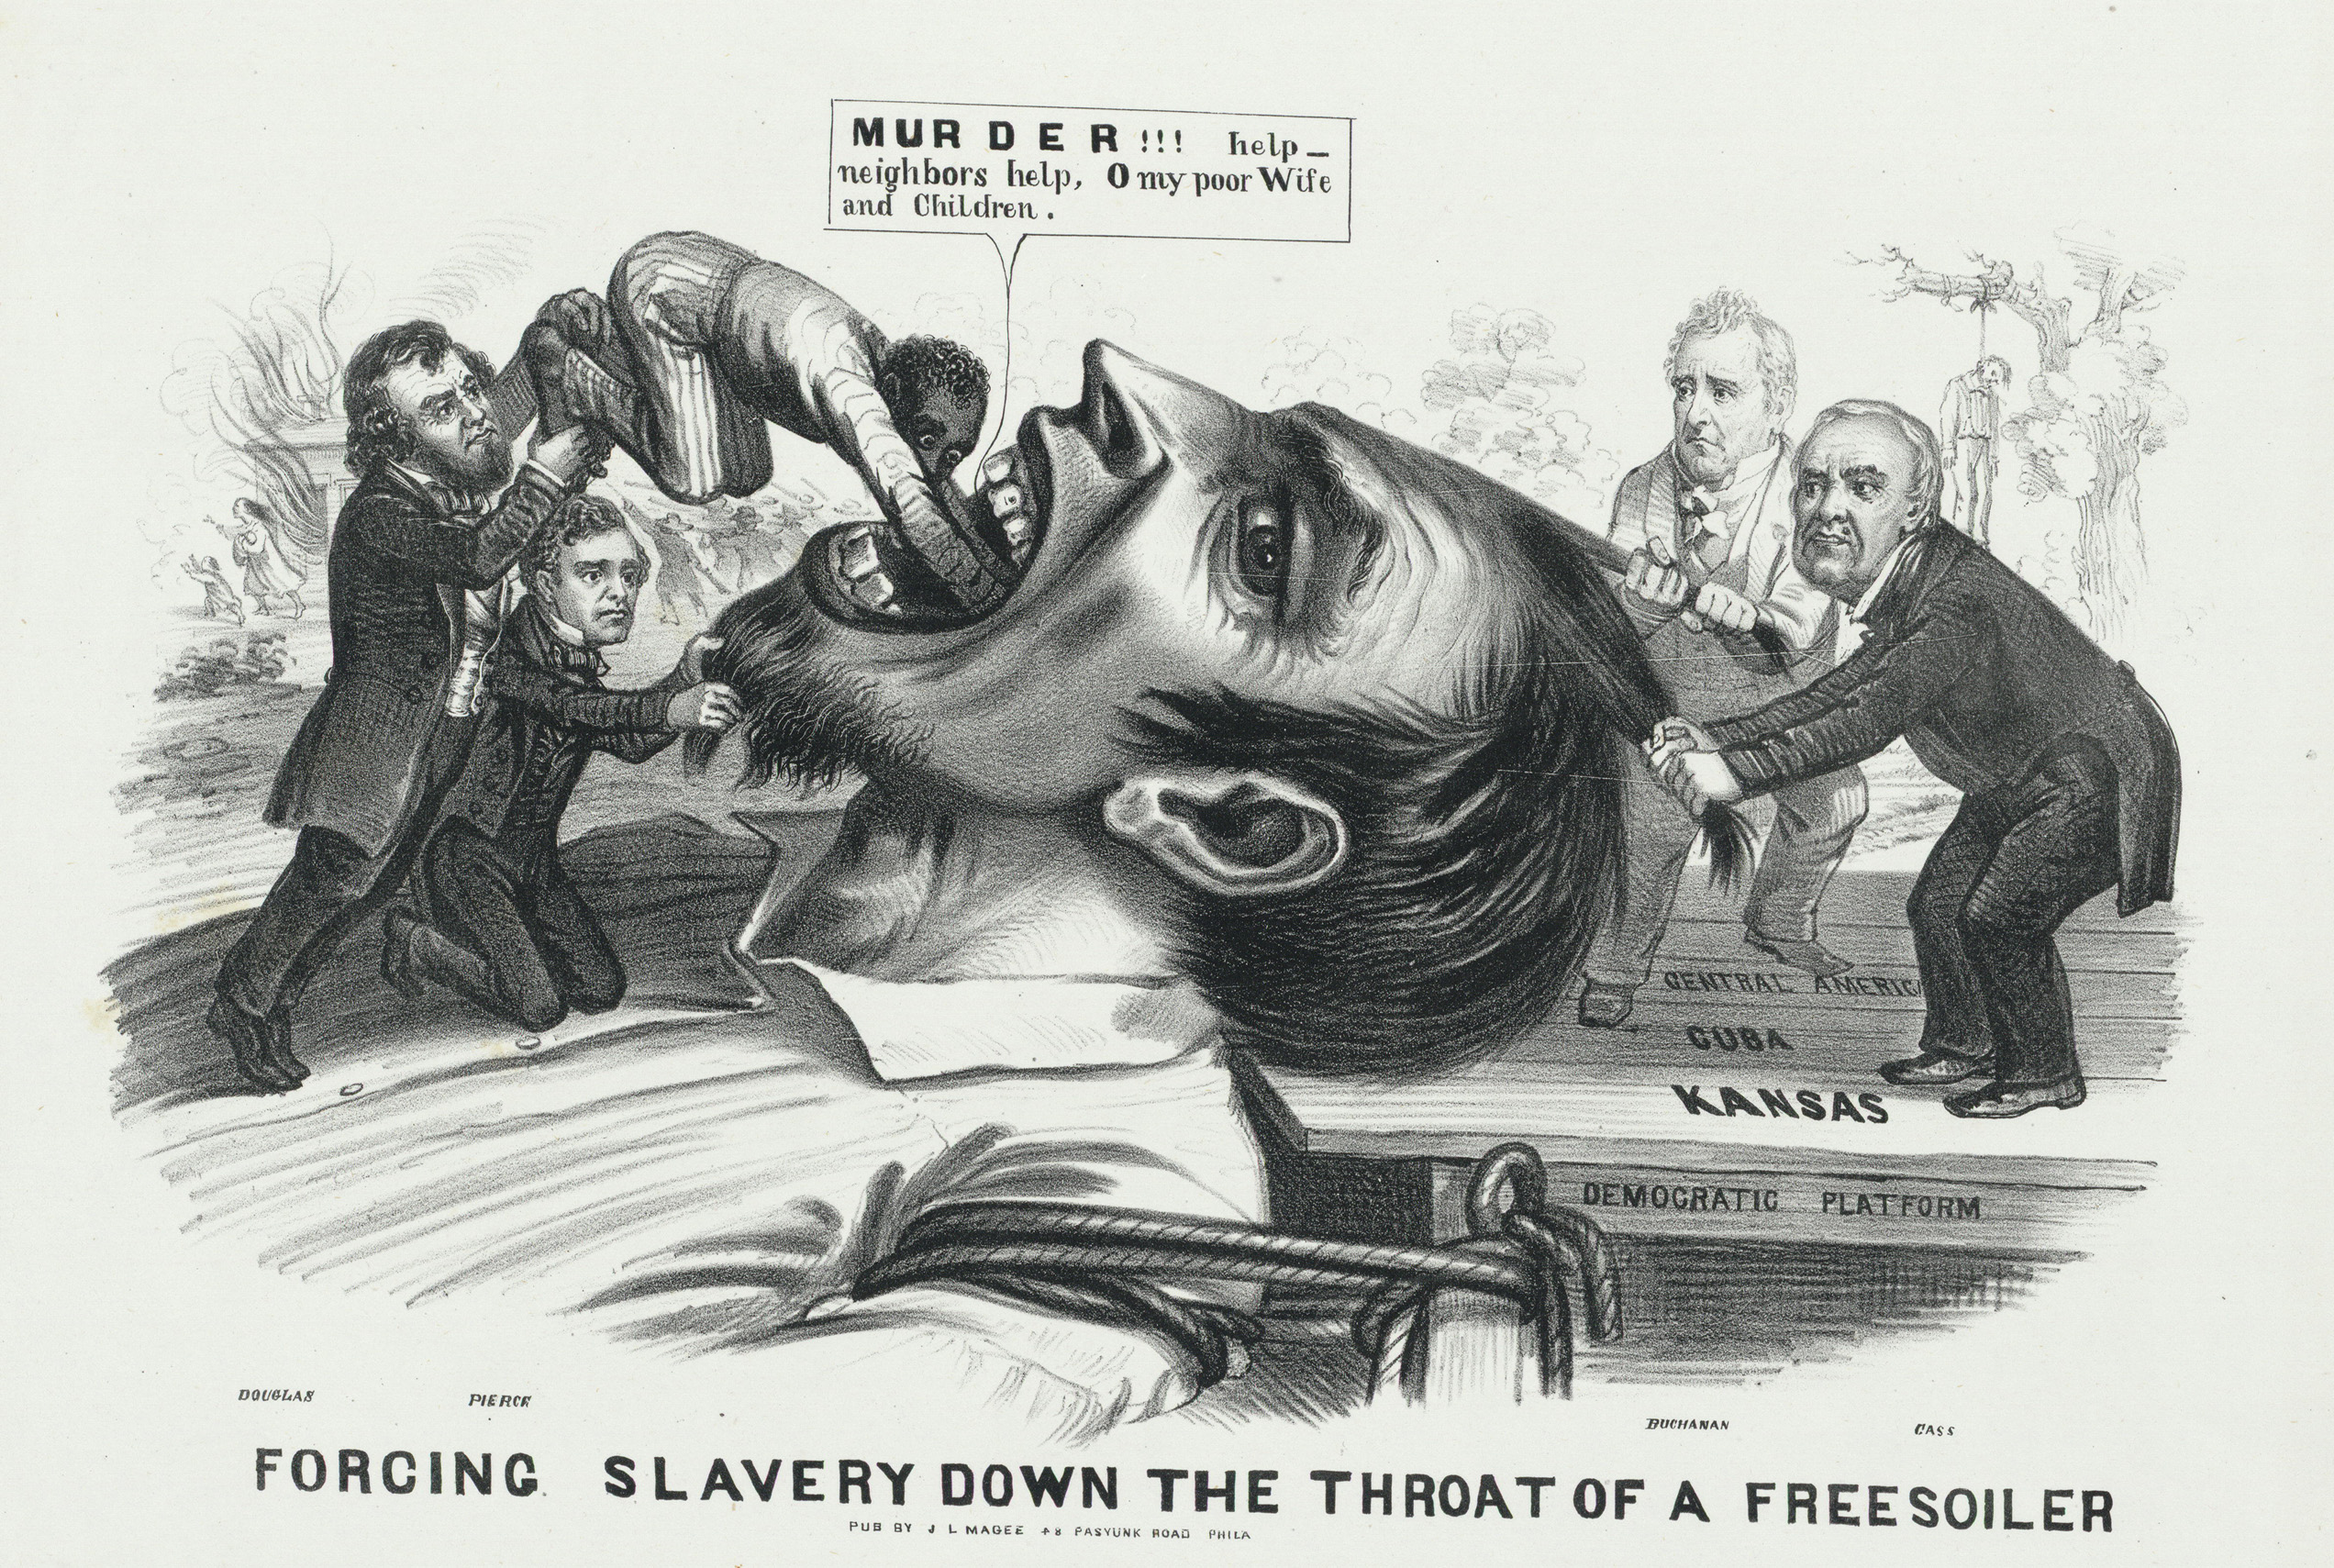 a comparison between the philosophies of abraham lincoln and stephen douglass Abraham lincoln at the time of his historic debates with stephen a  of william  lloyd garrison and frederick douglass and the popular  in addition, the  republican party platform of 1860 will be compared with the platforms of the two   to prohibit slavery in the territories show how lincoln's moral beliefs.